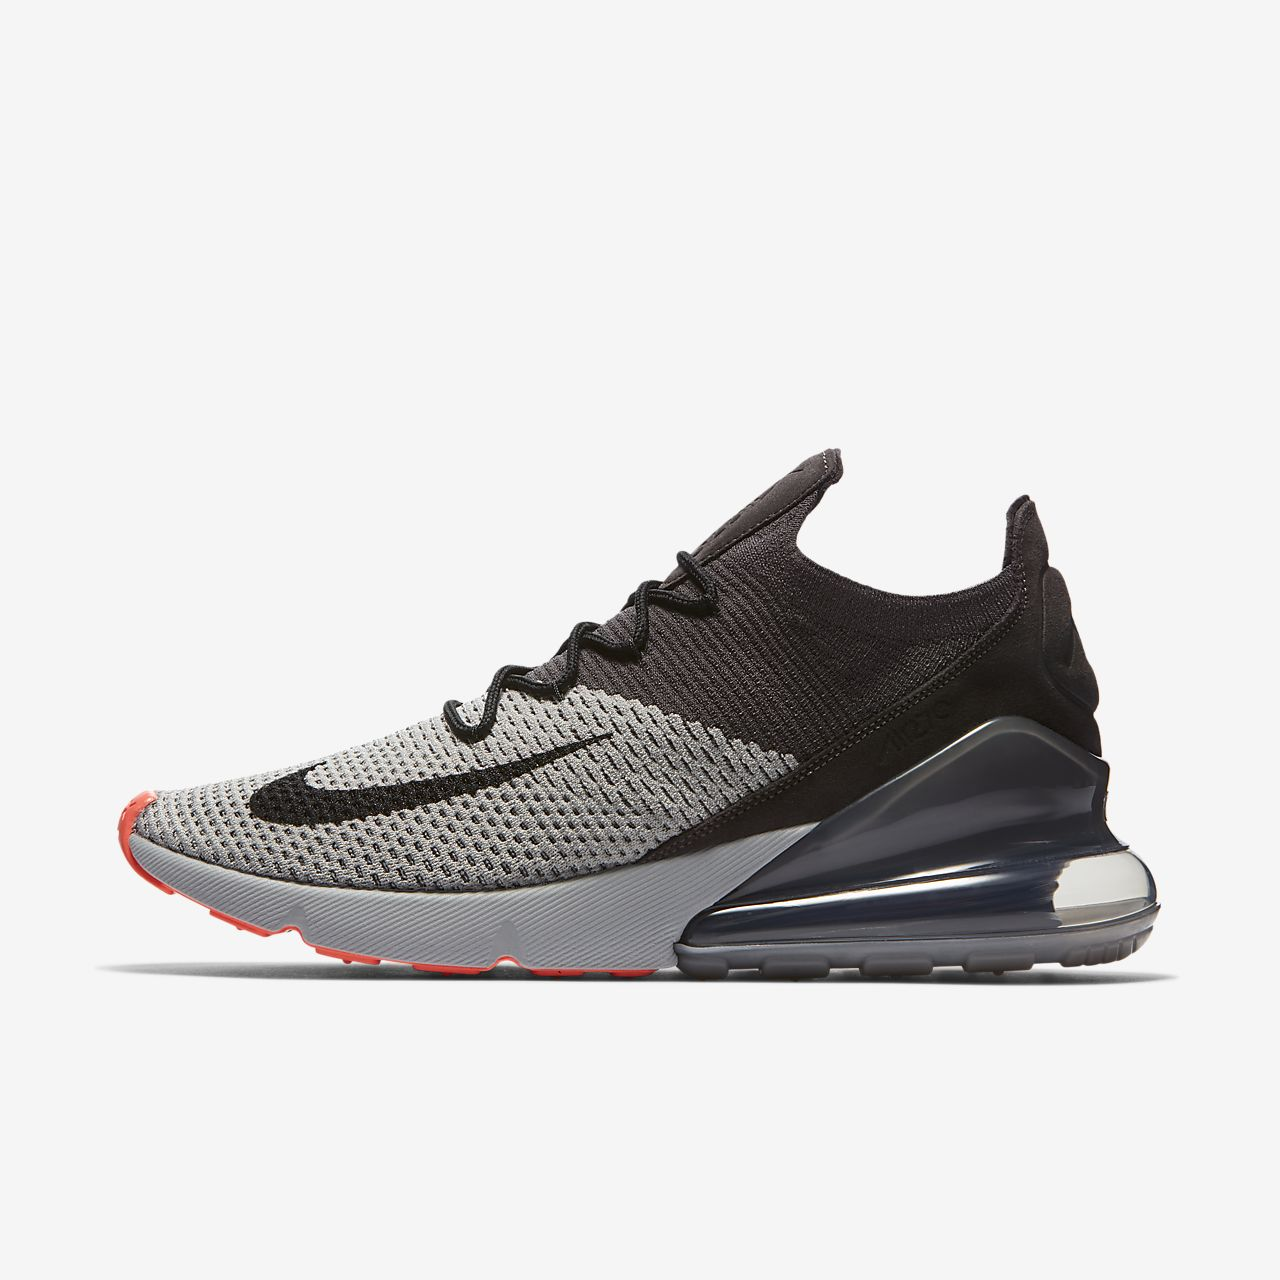 cde1d11a89fb Nike Air Max 270 Flyknit Men s Shoe. Nike.com AE